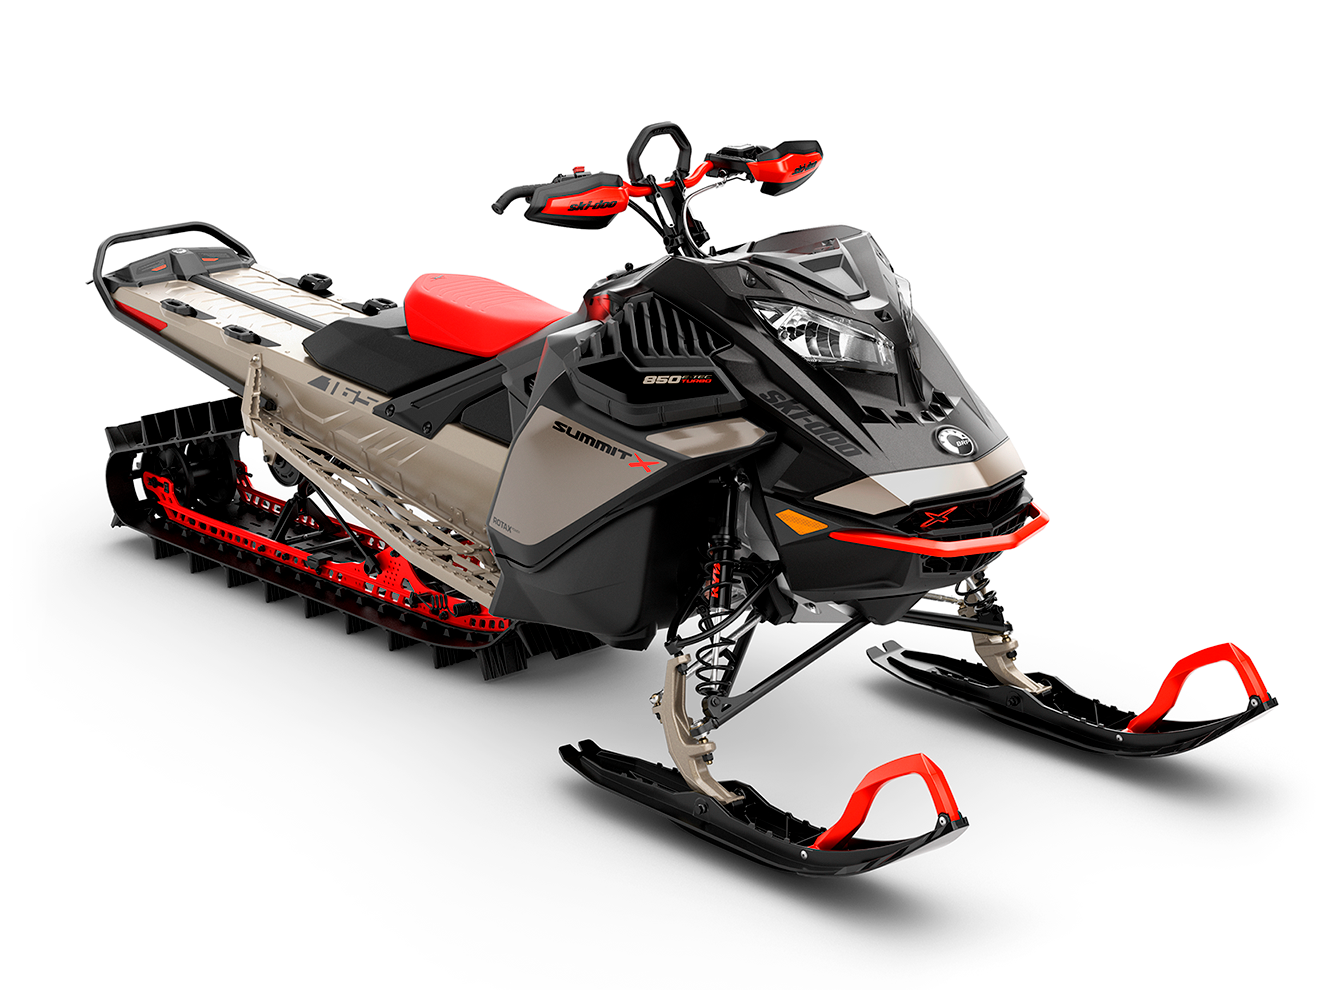 2022 Ski-Doo Summit: Lightweight Features